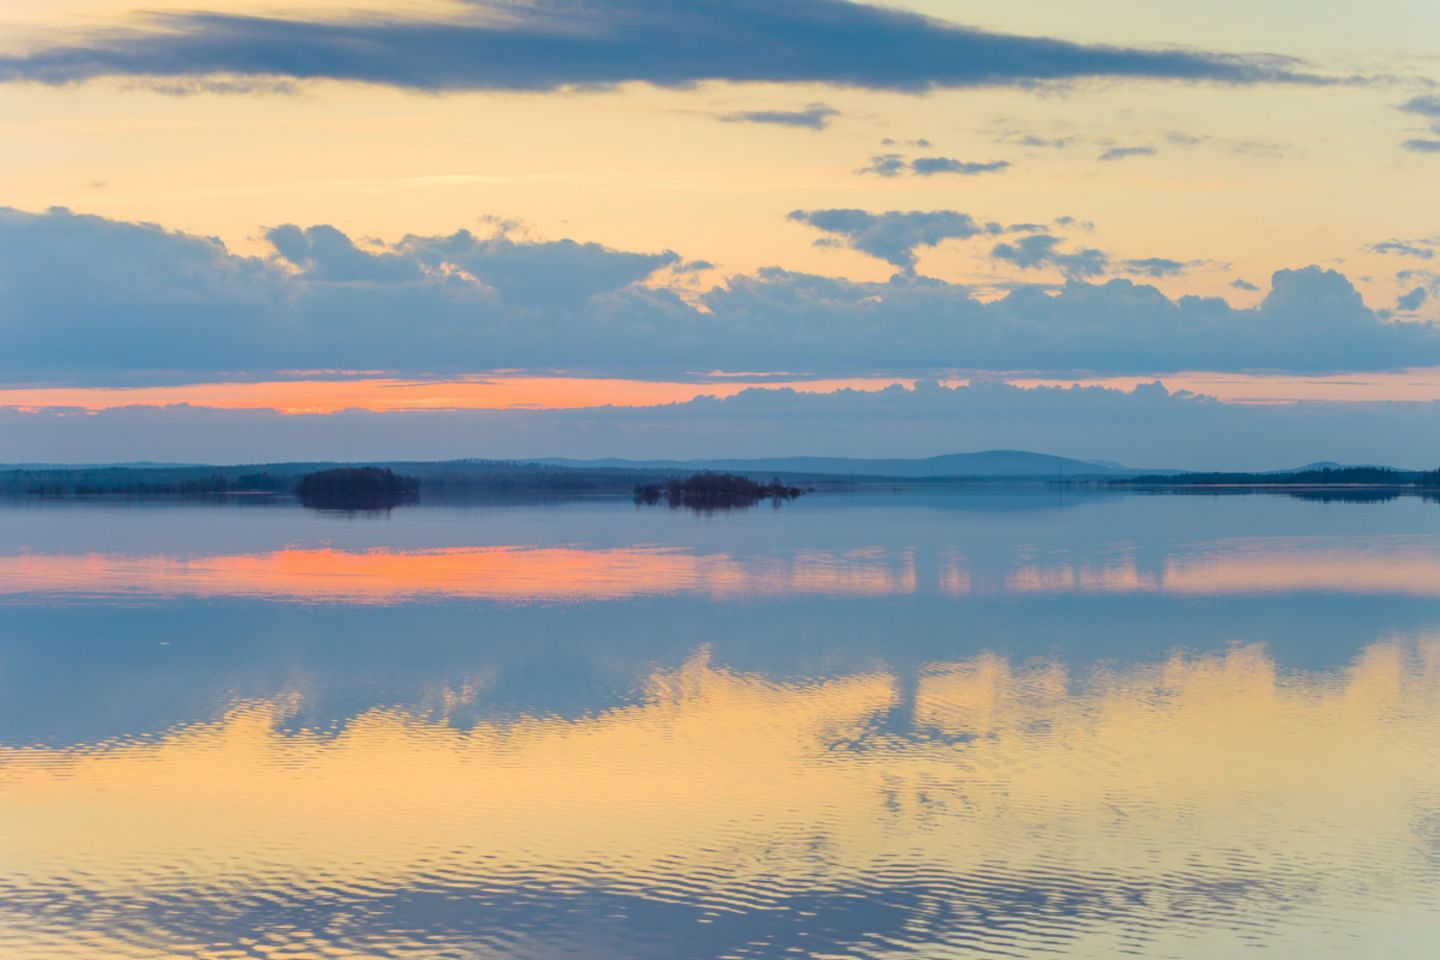 A sunset during a slow travel trip to Finnish Lapland in the summer